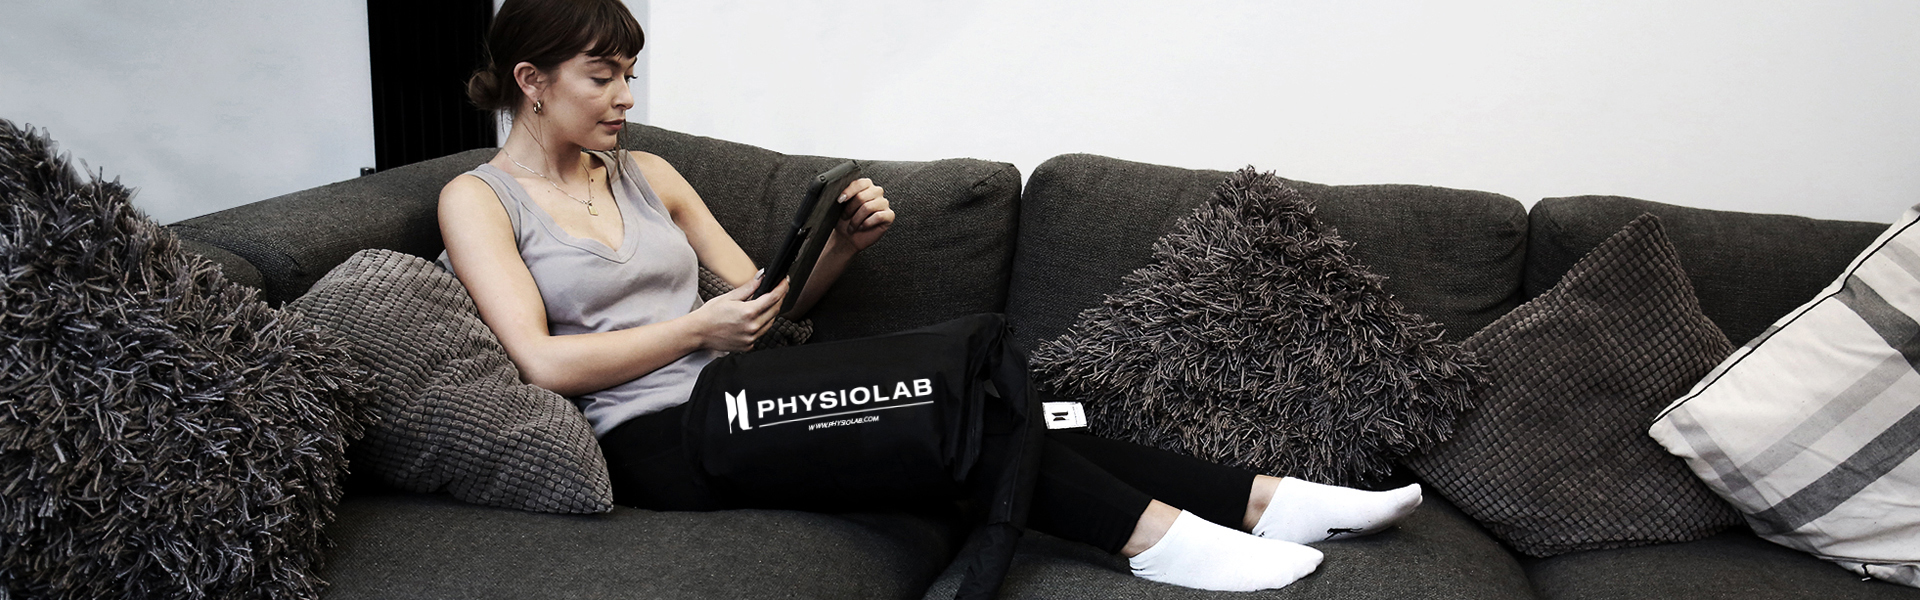 Physiolab post operation recovery